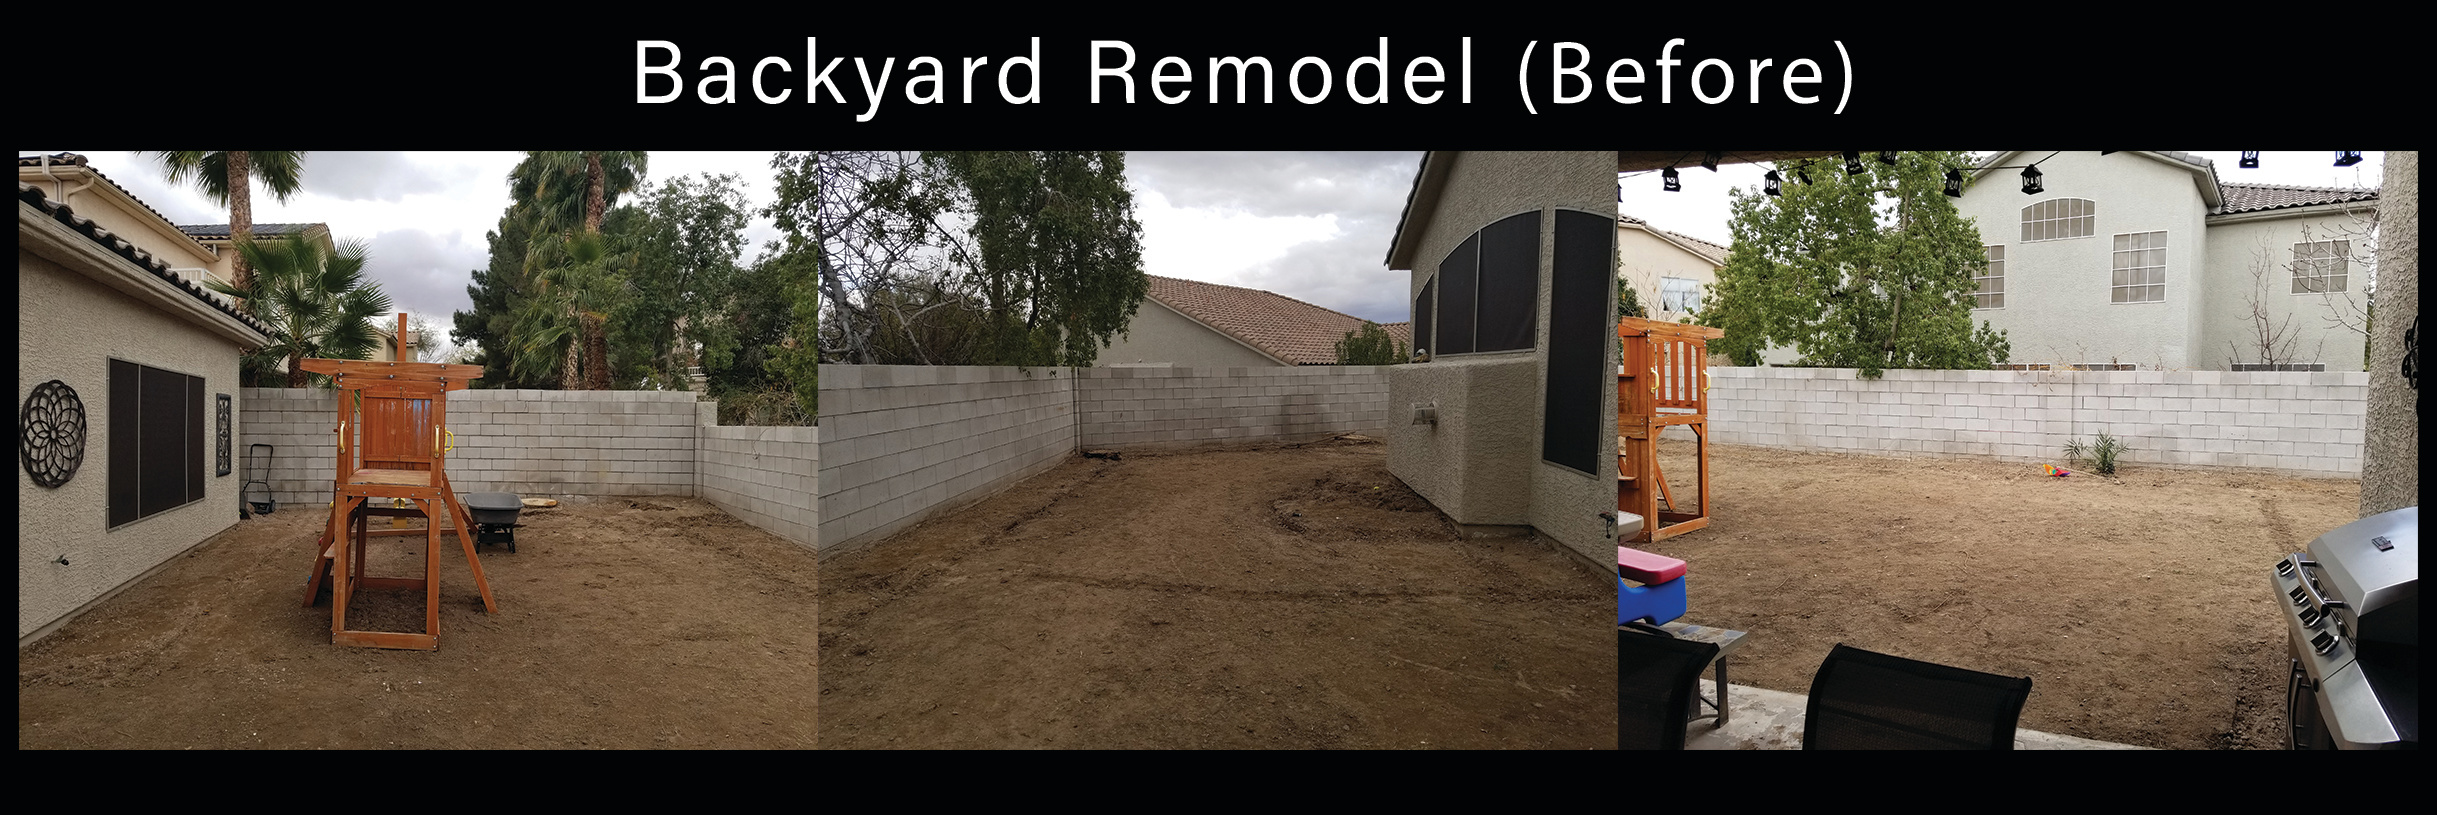 backyard remodel Before